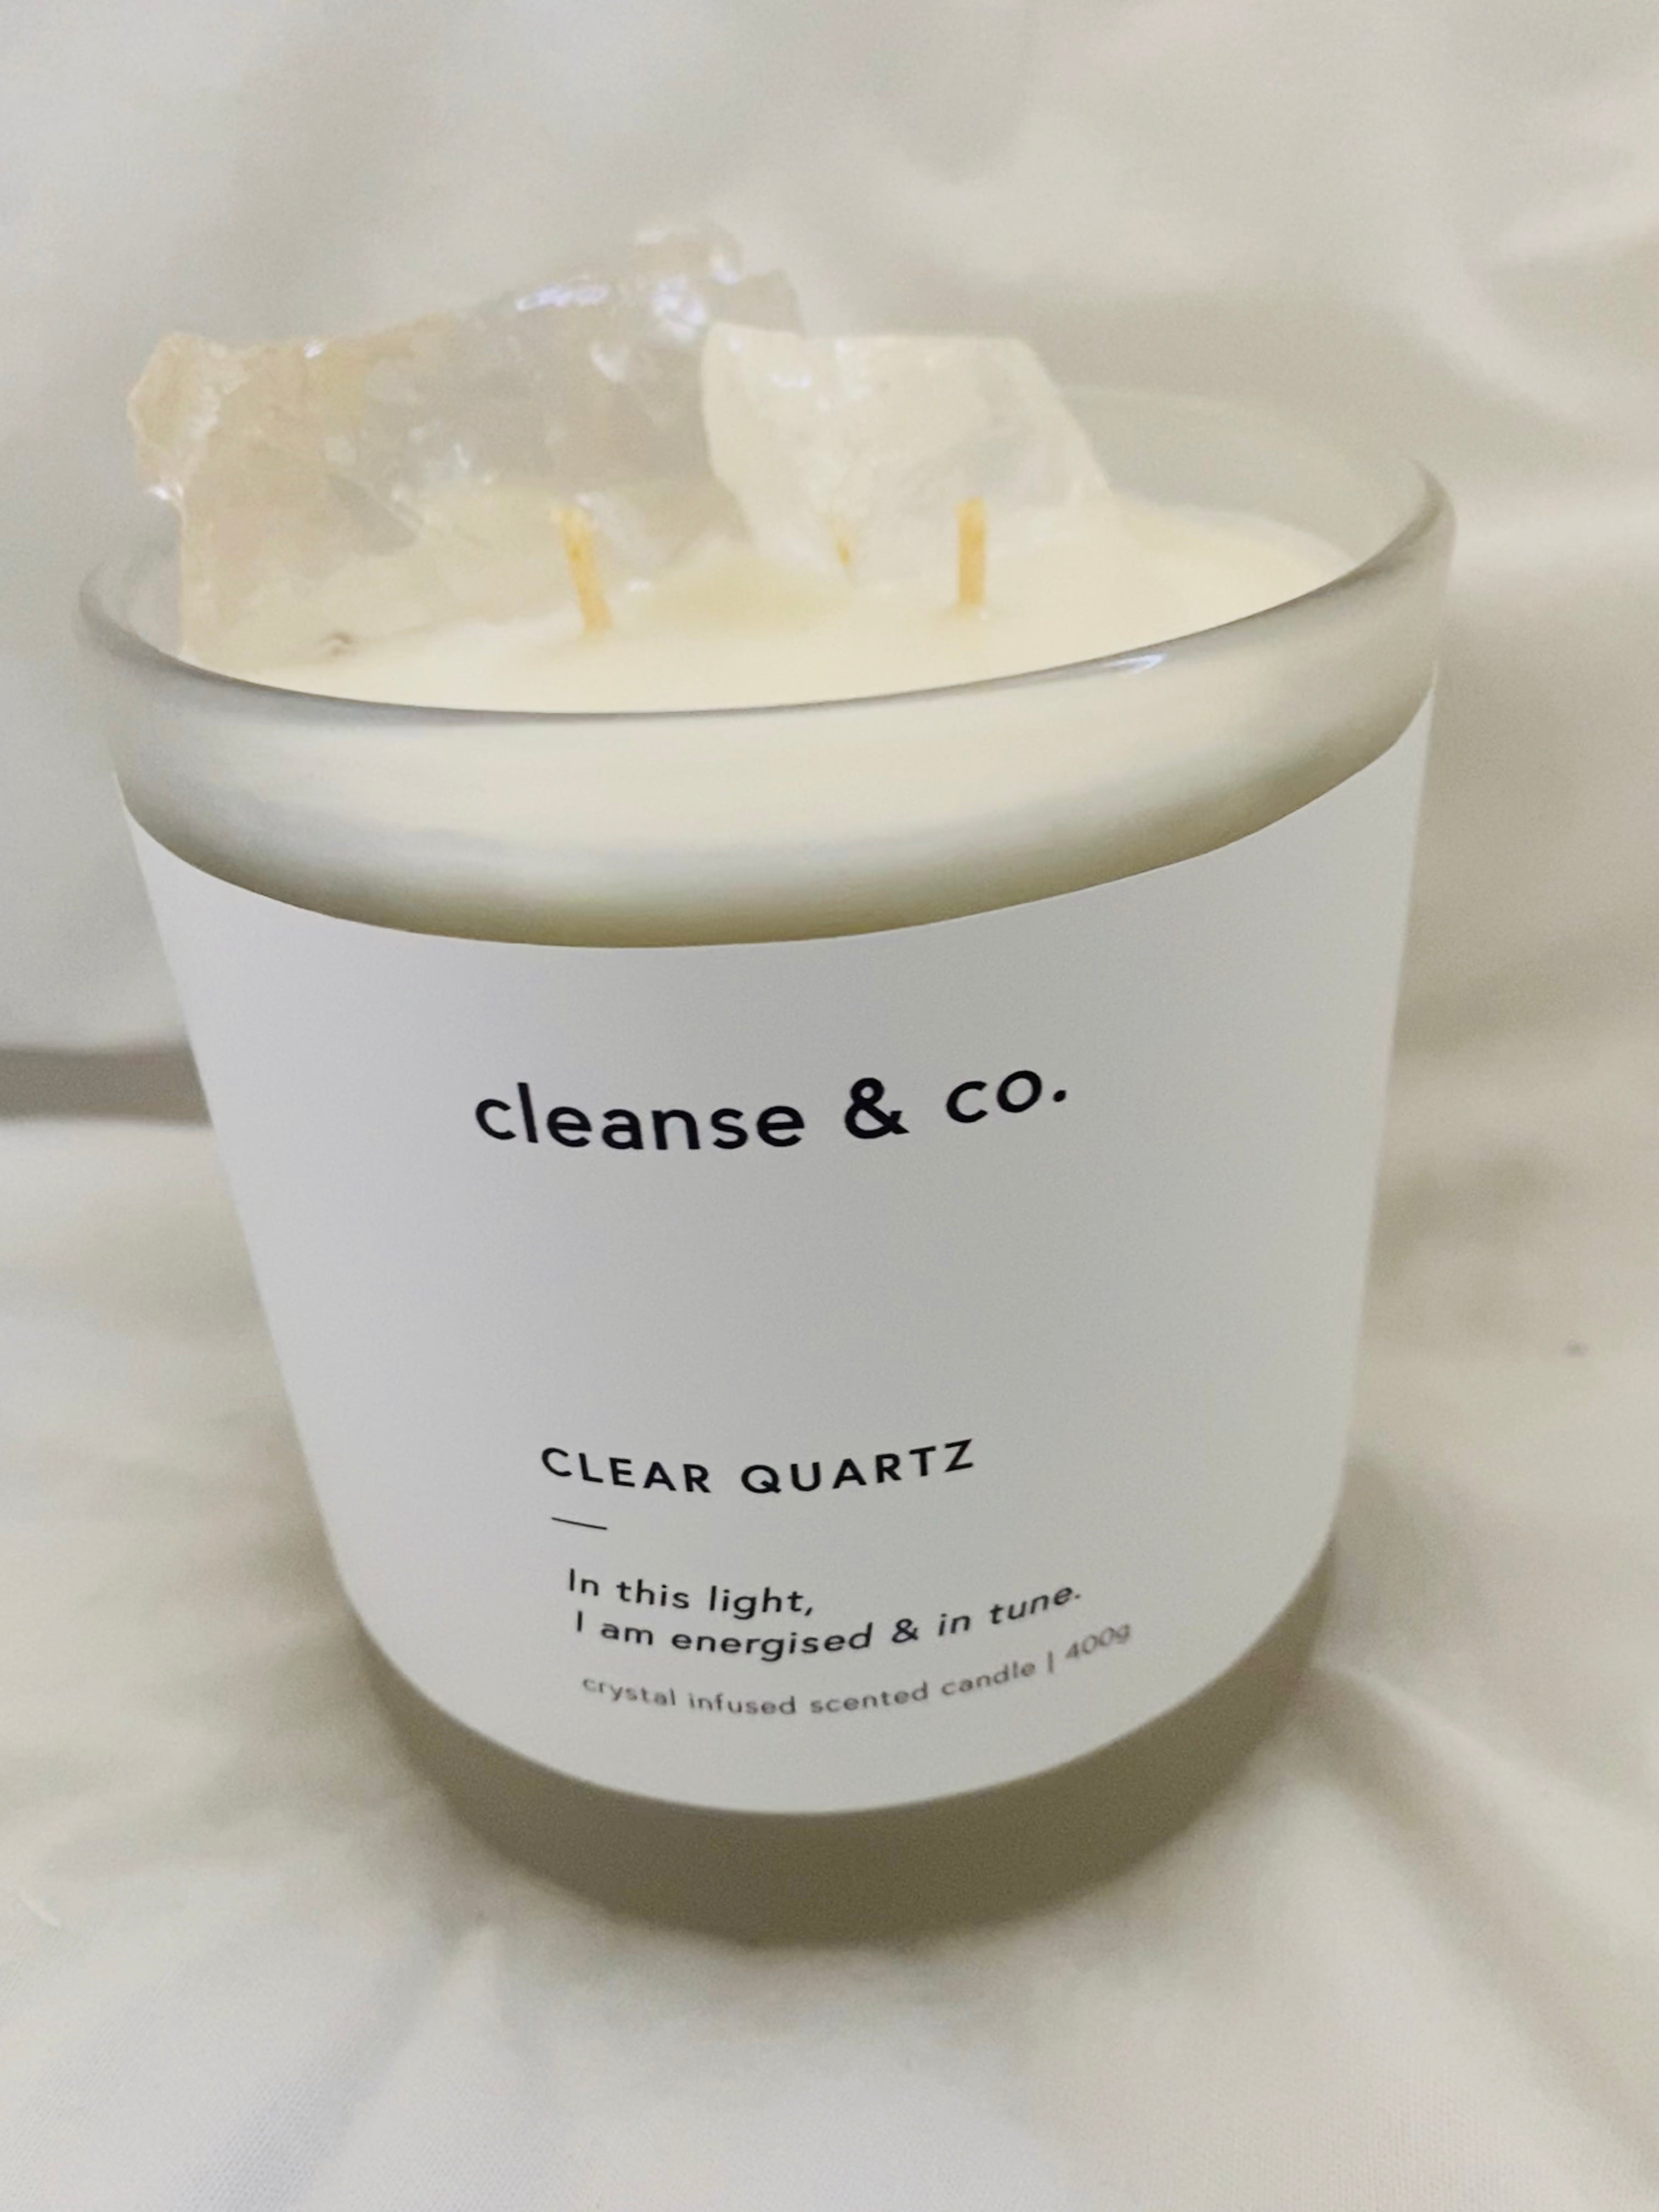 Cleanse & co crystal infused candle.